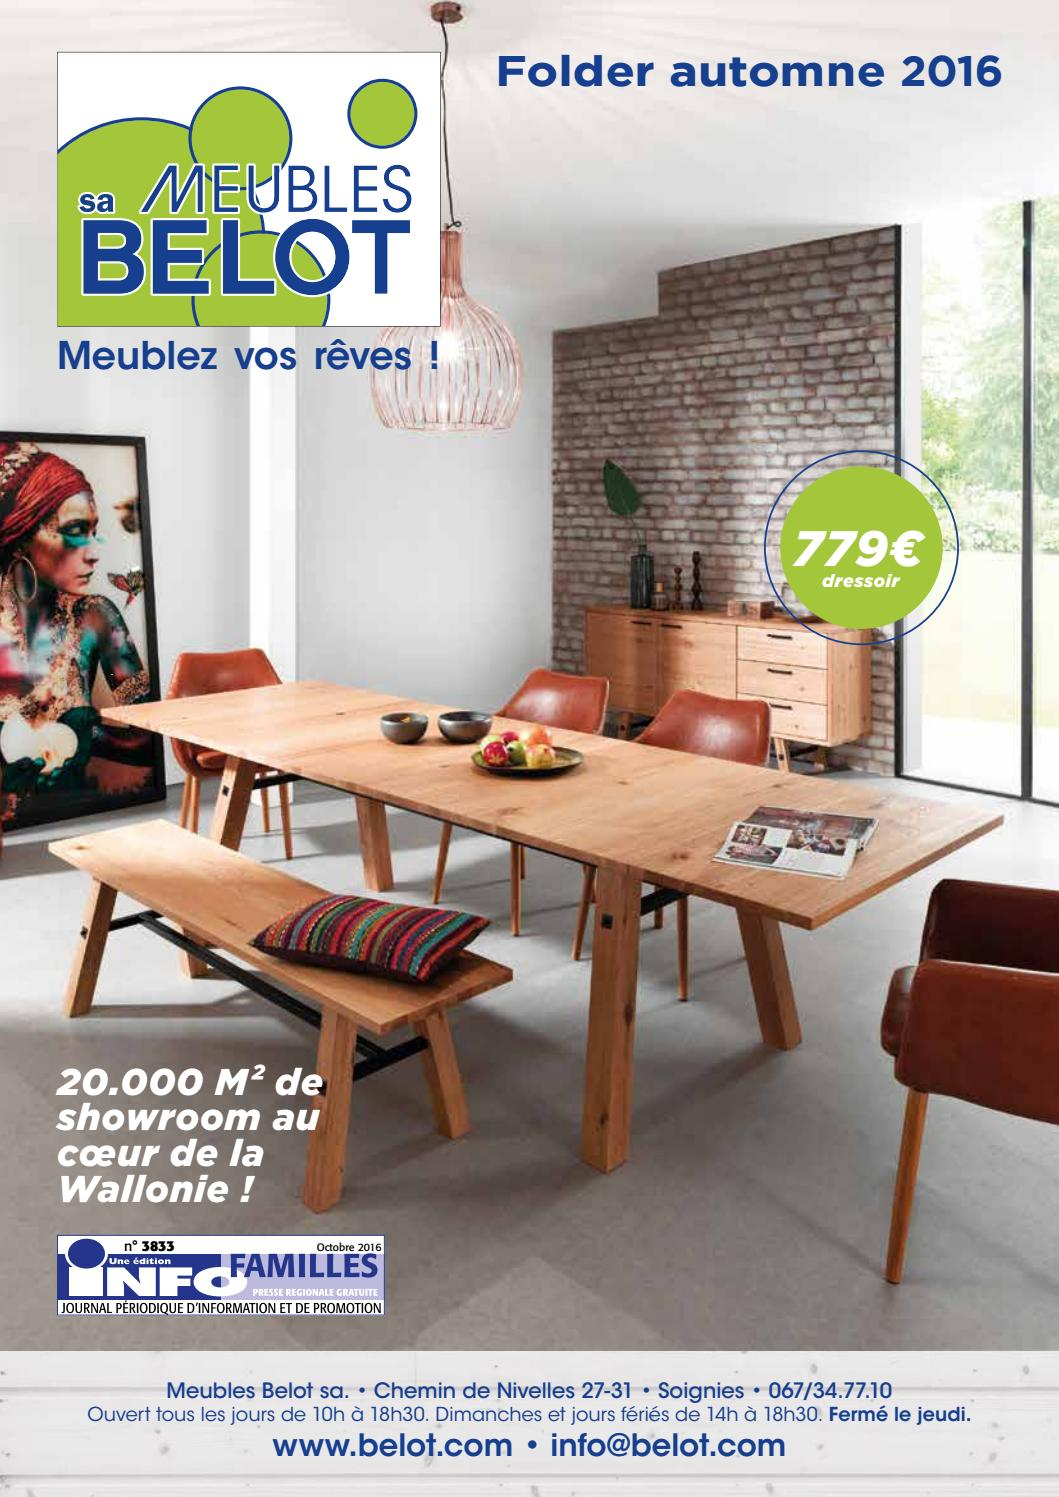 Meuble Belot Porte Manteau Meubles Belot Folder Automne 2016 By Meubles Belot Sa Issuu